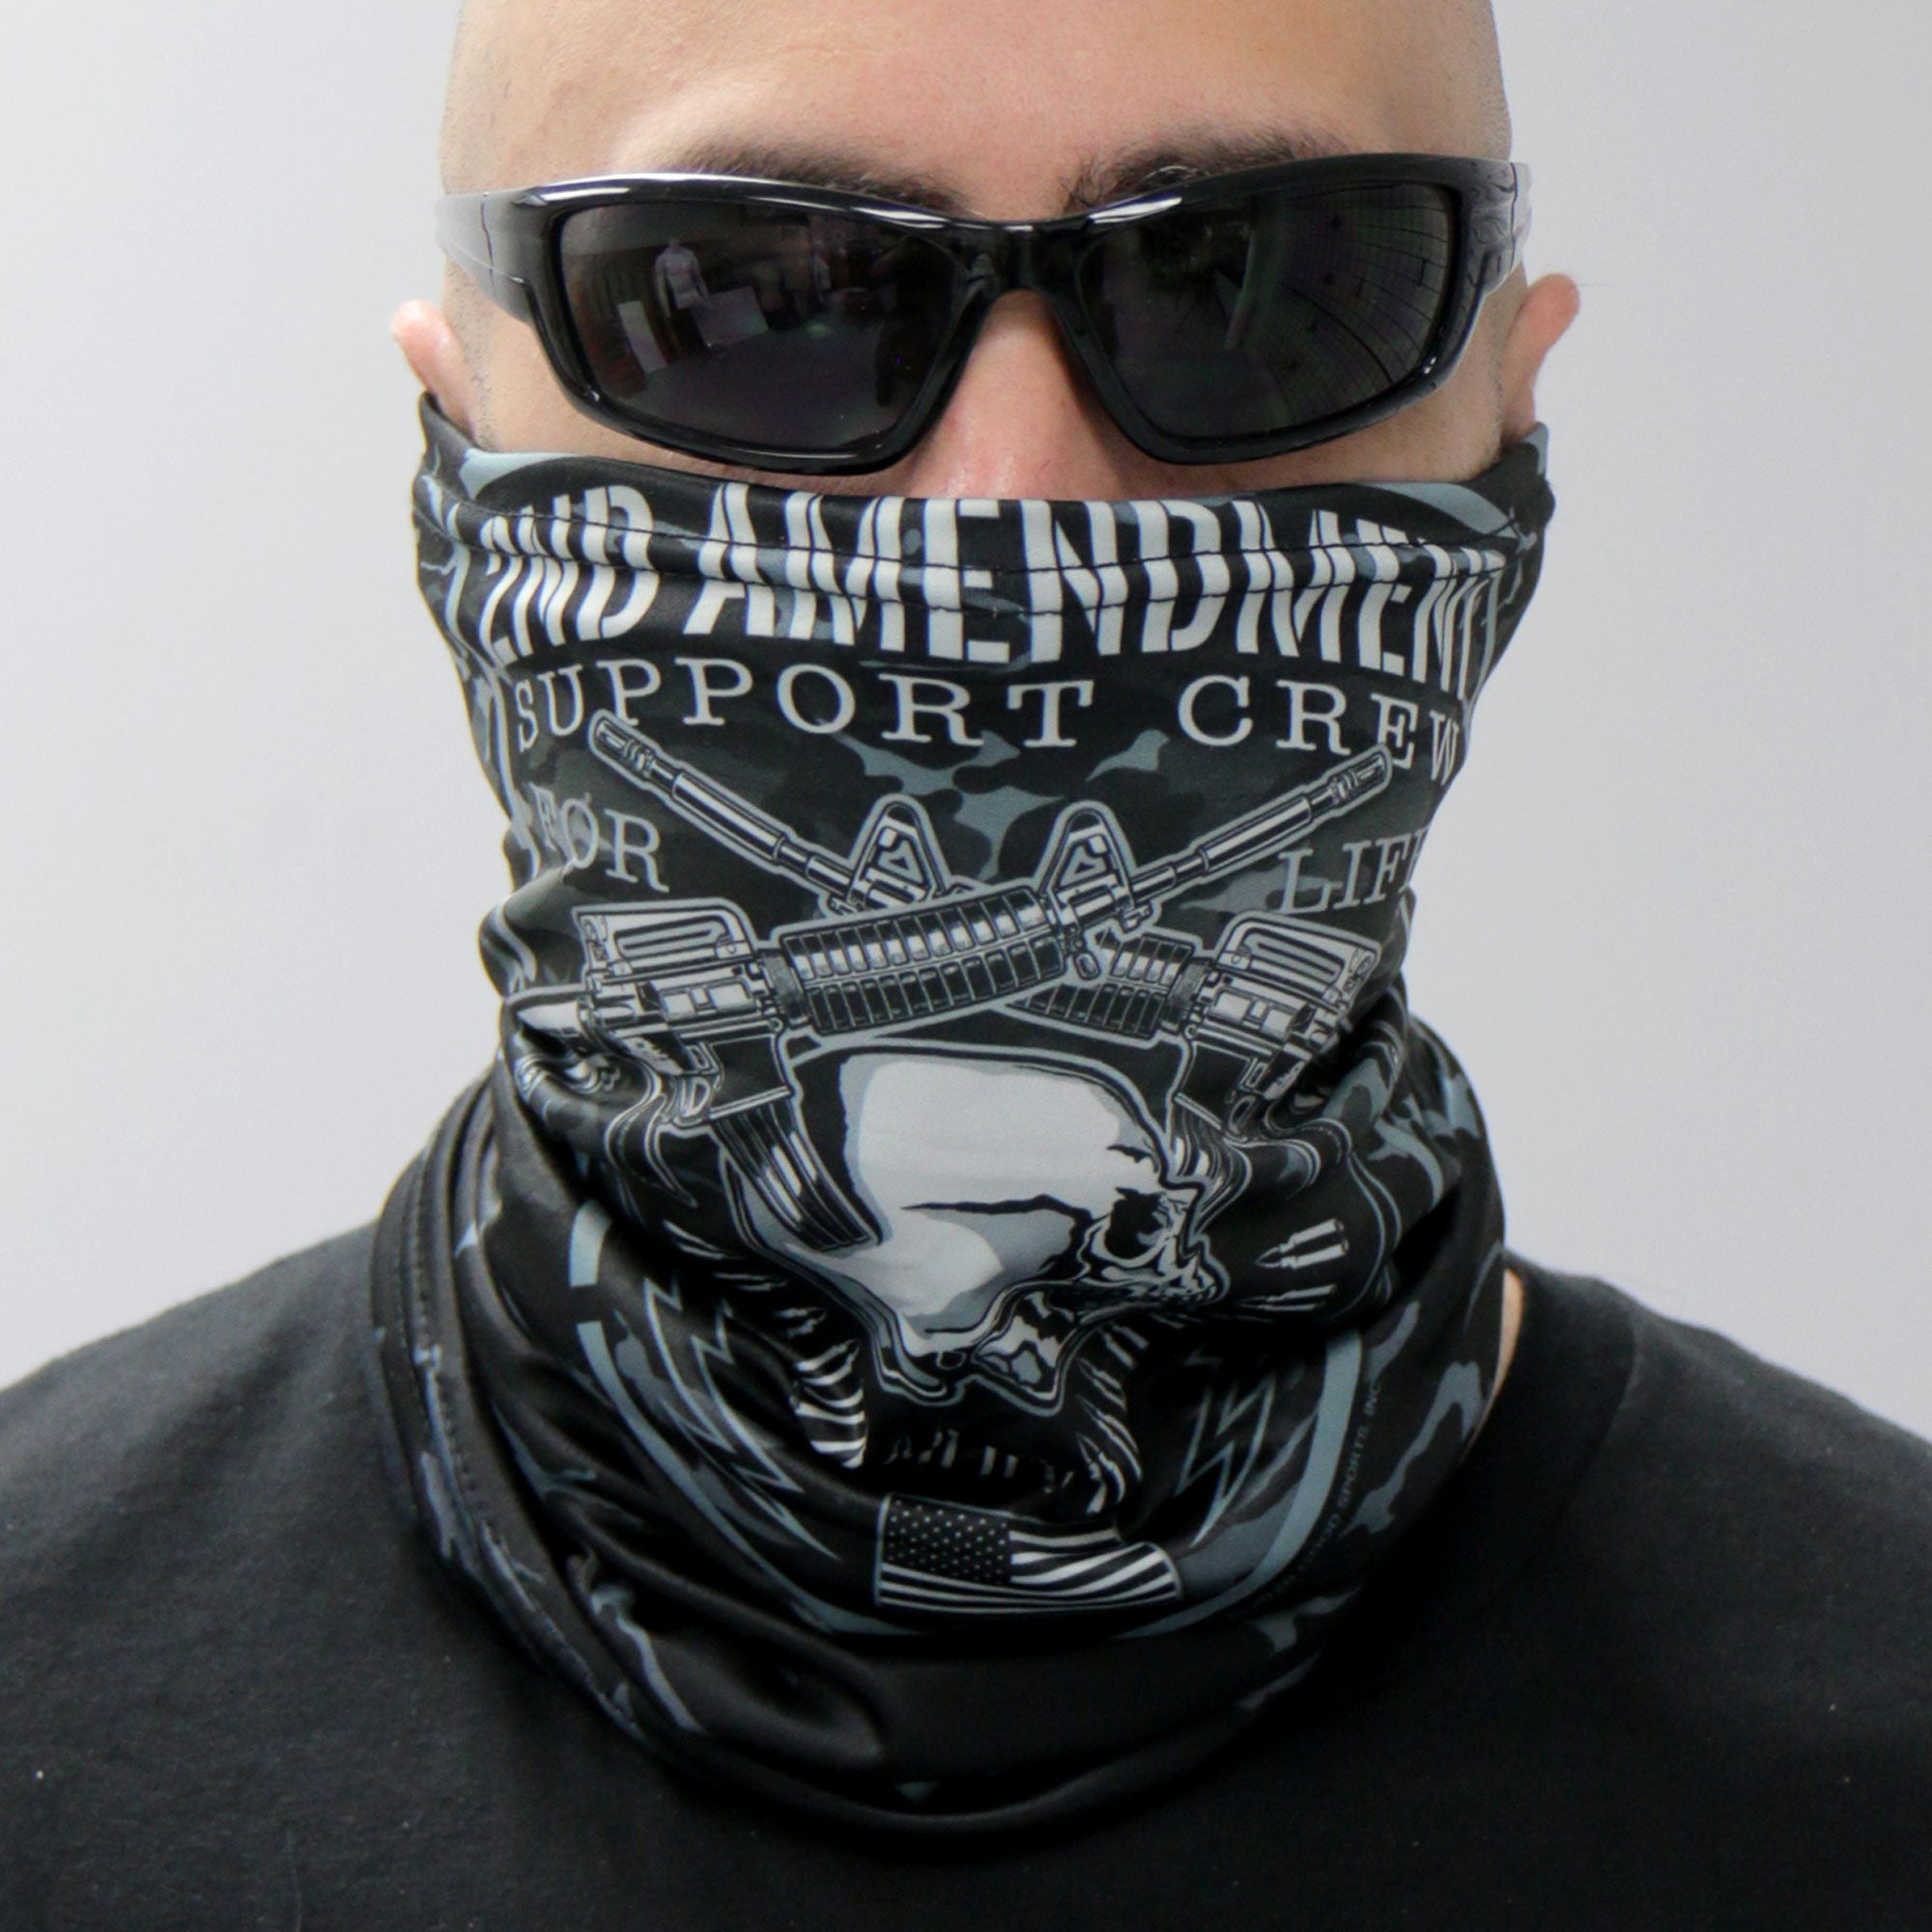 Hot Leathers 2nd Amendment Support Crew Neck Gaiter Mask